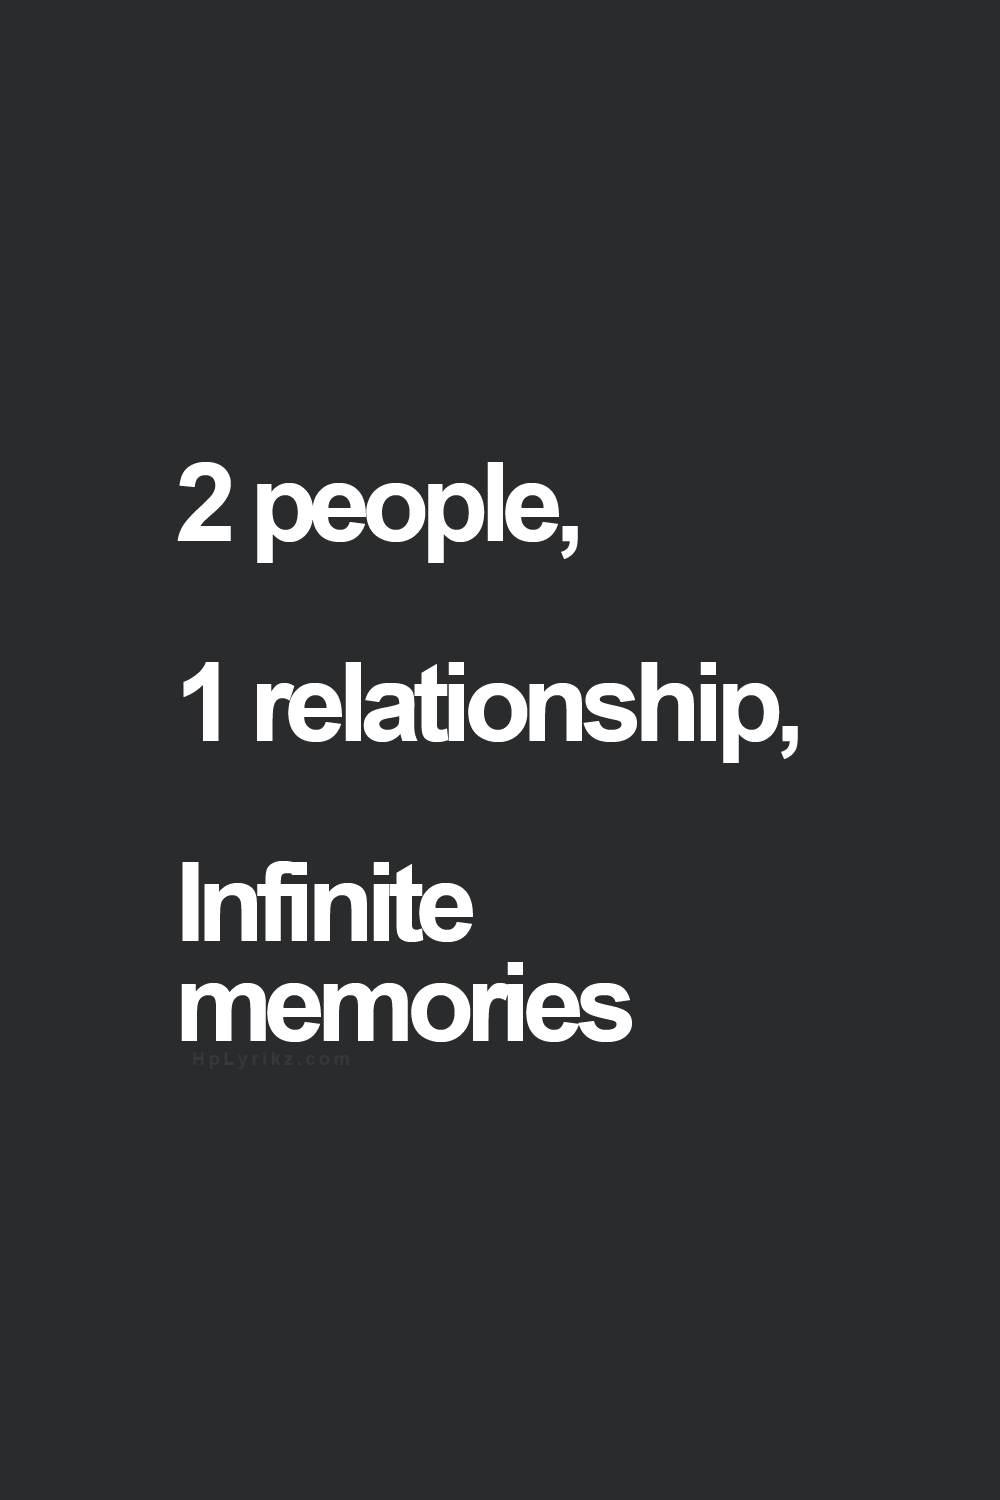 Quote About Relationships 3 Perfect Memories  Quotes And Sayings  Pinterest  Infinite